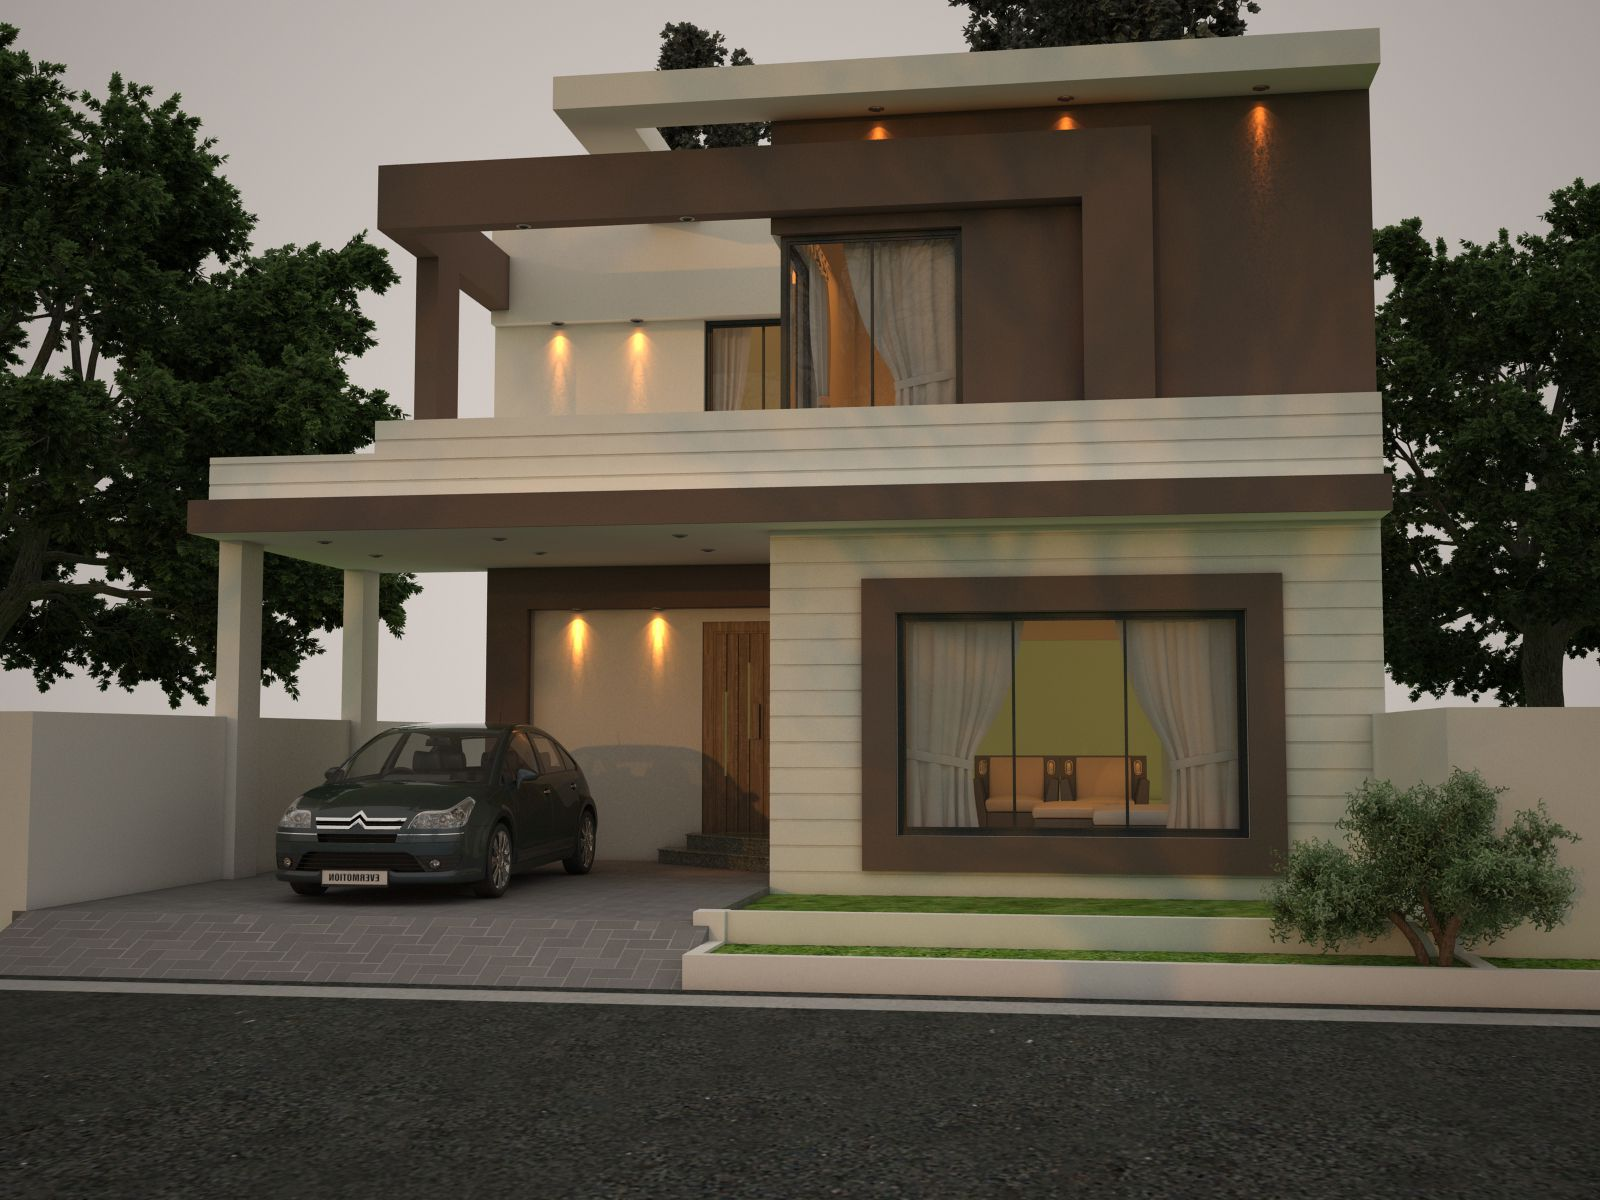 The Outstanding Front Elevation House Front Design Kerala House Design House Architecture Design